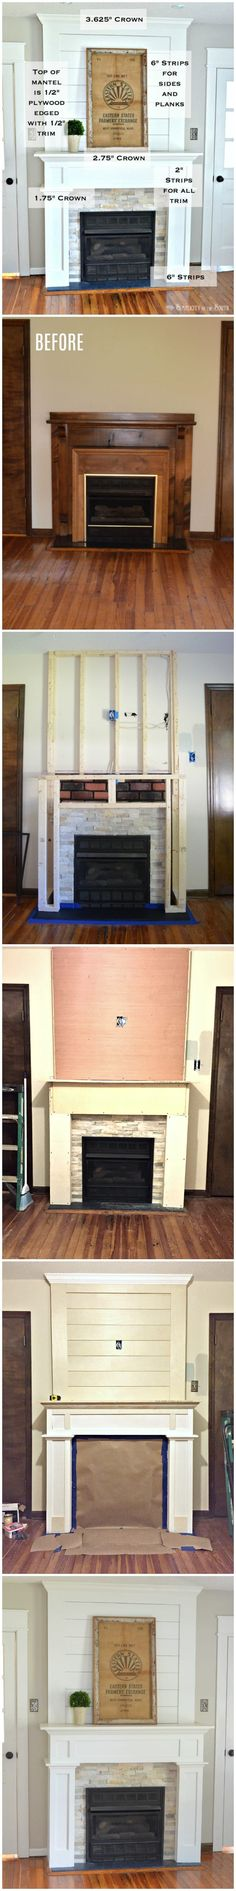 Such an easy way to do a DIY farmhouse style fireplace makeover on a budget with. - Such an easy way to do a DIY farmhouse style fireplace makeover on a budget with shiplap above the - Fireplace Redo, Shiplap Fireplace, Farmhouse Fireplace, Fireplace Remodel, Living Room With Fireplace, Fireplace Design, Fireplace Mantels, My Living Room, Fireplace Makeovers